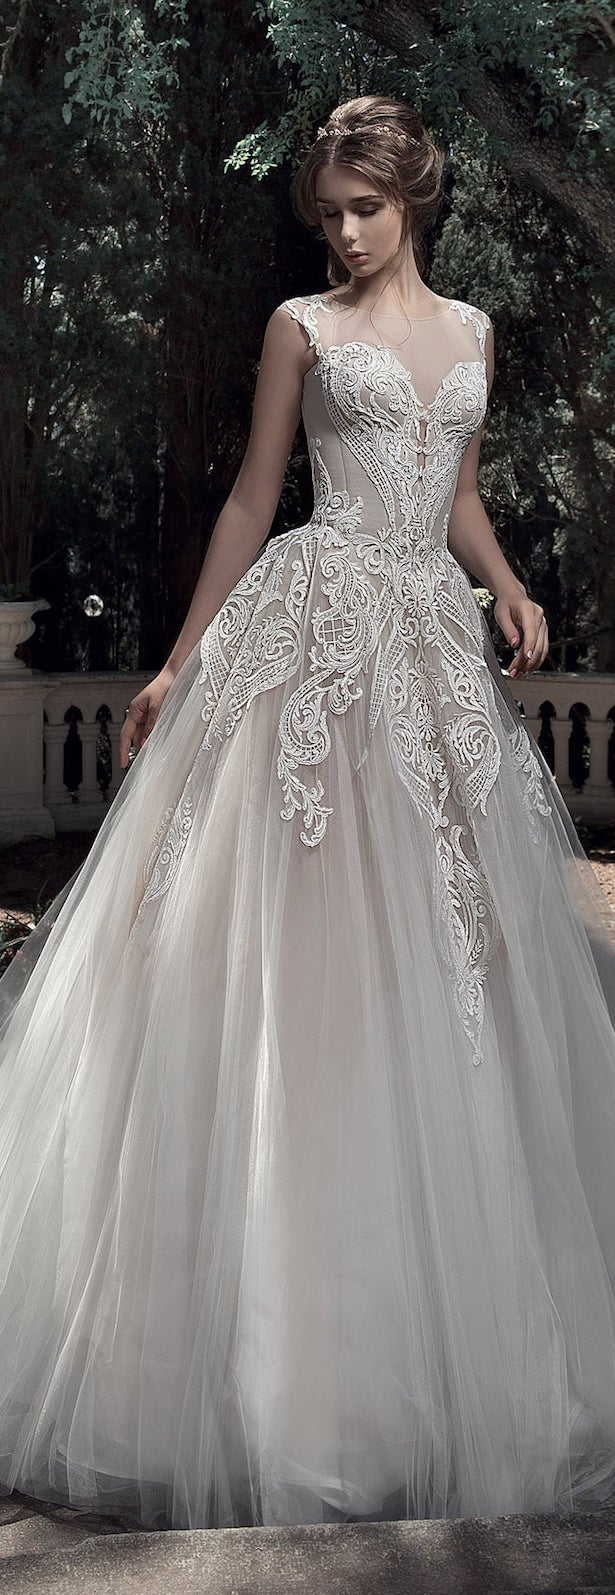 Boston Wedding Dress Outlet